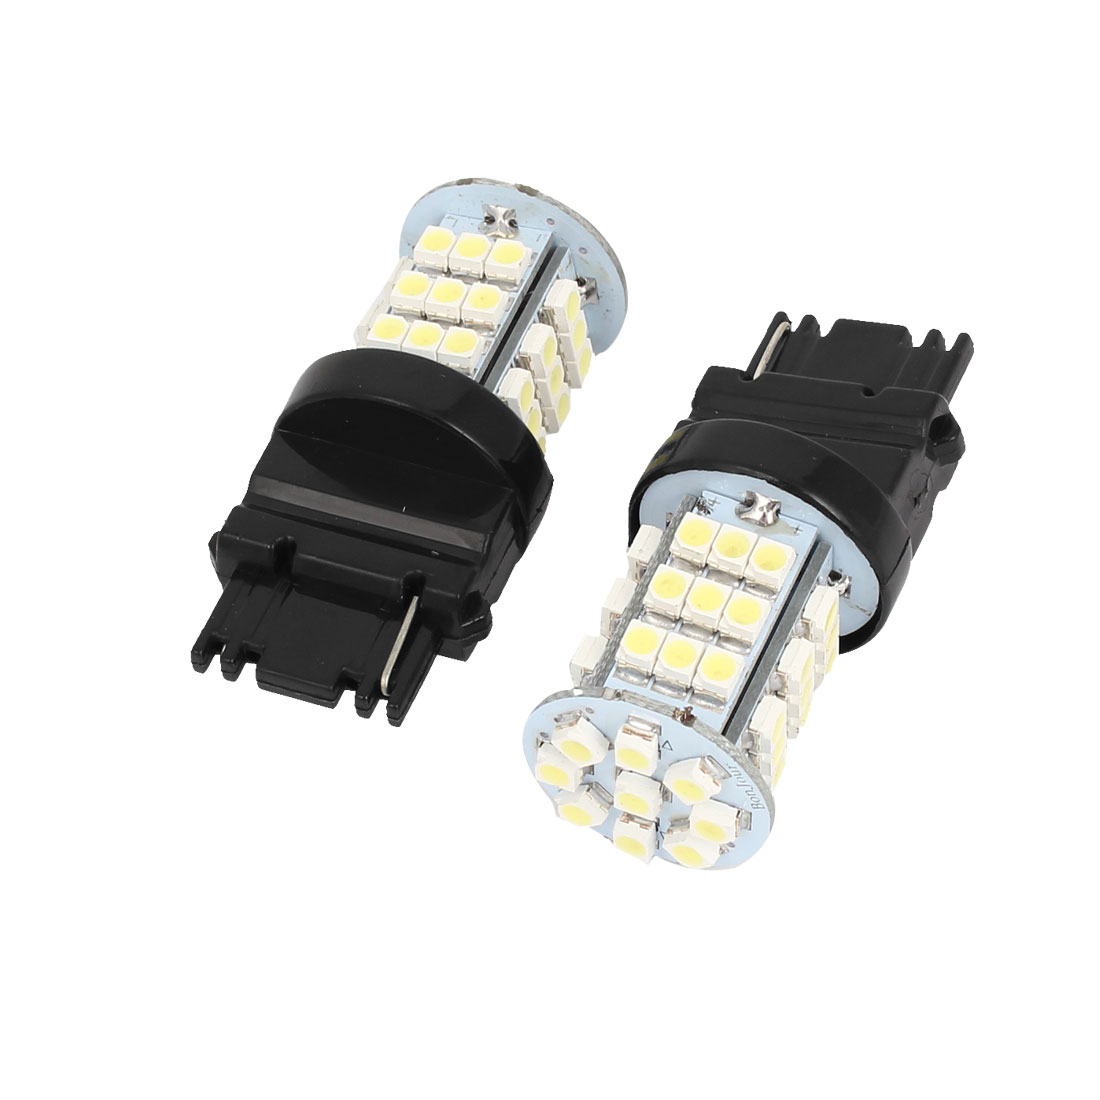 2 Pcs 3156 3528 SMD 45 LED Car Turn Signal Light Lamp Bulbs White 4114 4156